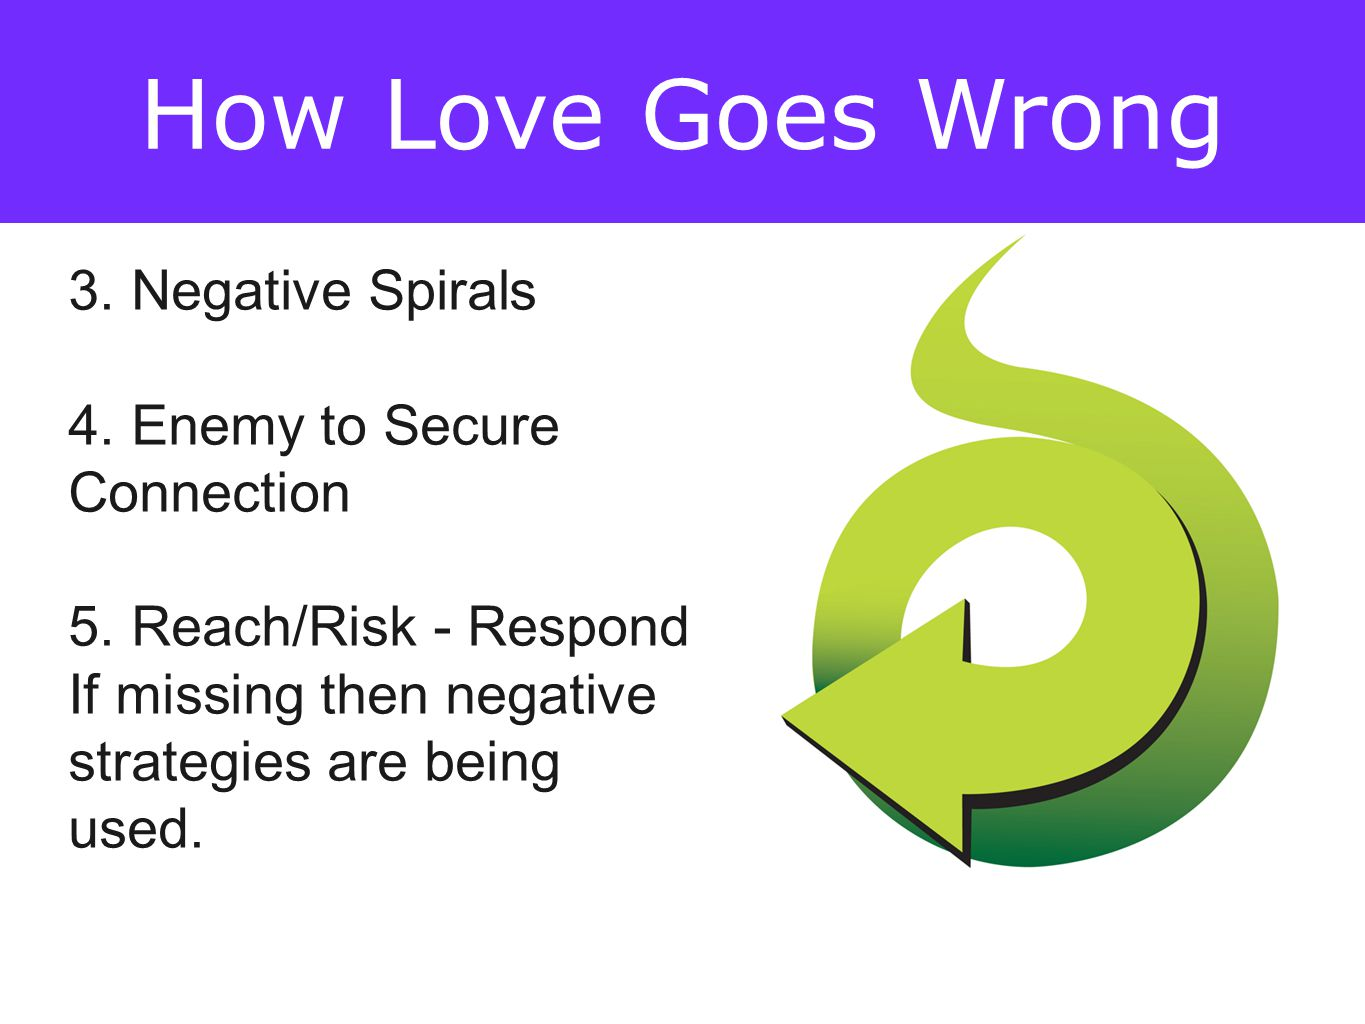 3. Negative Spirals 4. Enemy to Secure Connection 5. Reach/Risk - Respond If missing then negative strategies are being used. How Love Goes Wrong